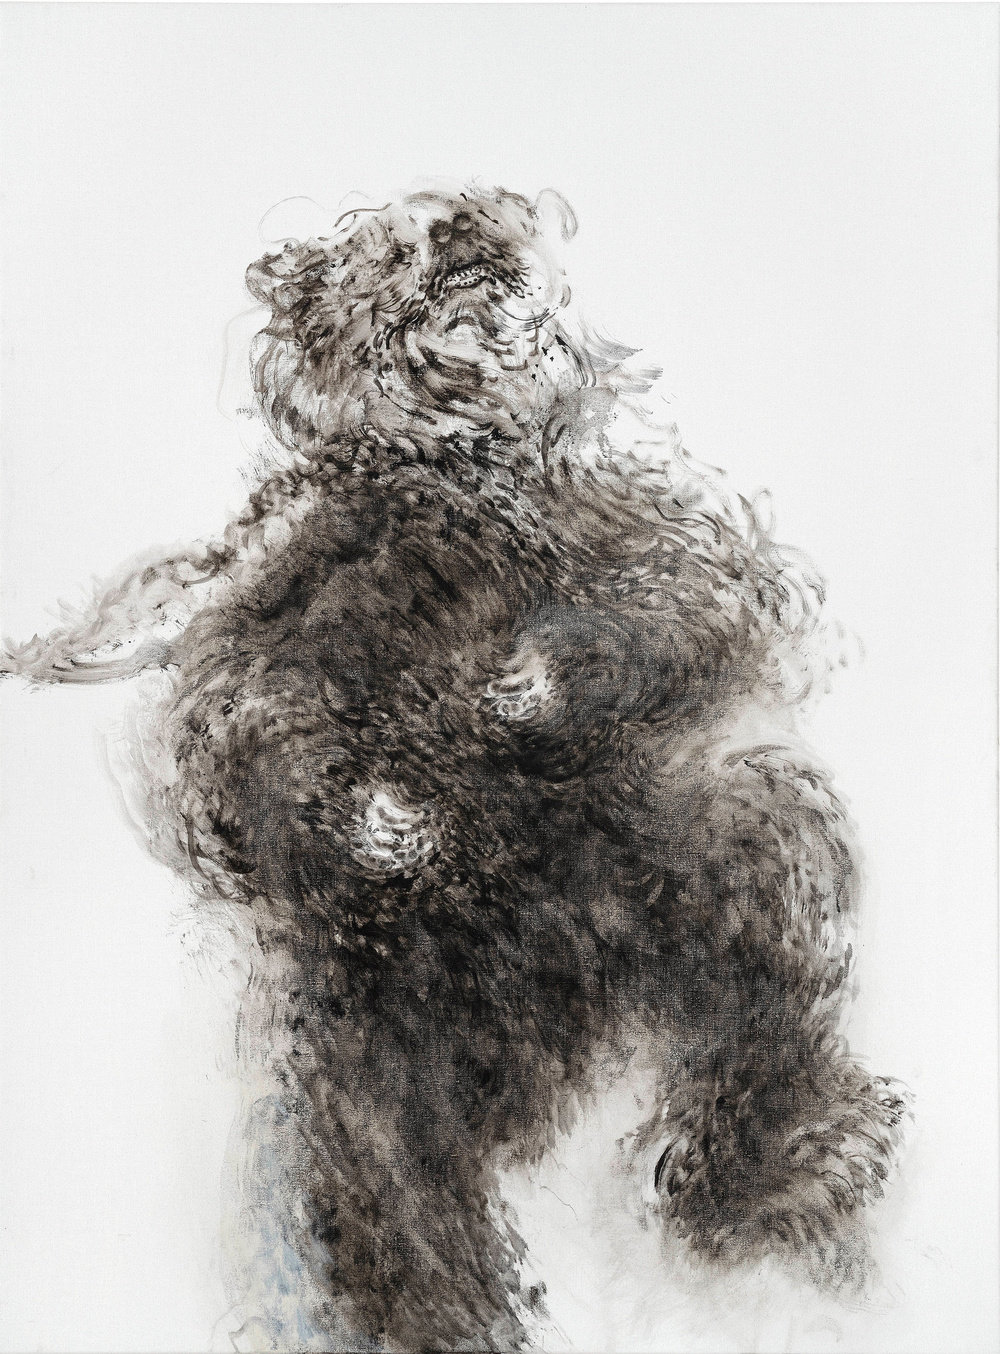 Maggi Hambling, Young Dancing Bear, 2019, oil on canvas. Depicted is a young dancing bear, center to the canvas, animated in movement, gazing up into empty white space above.